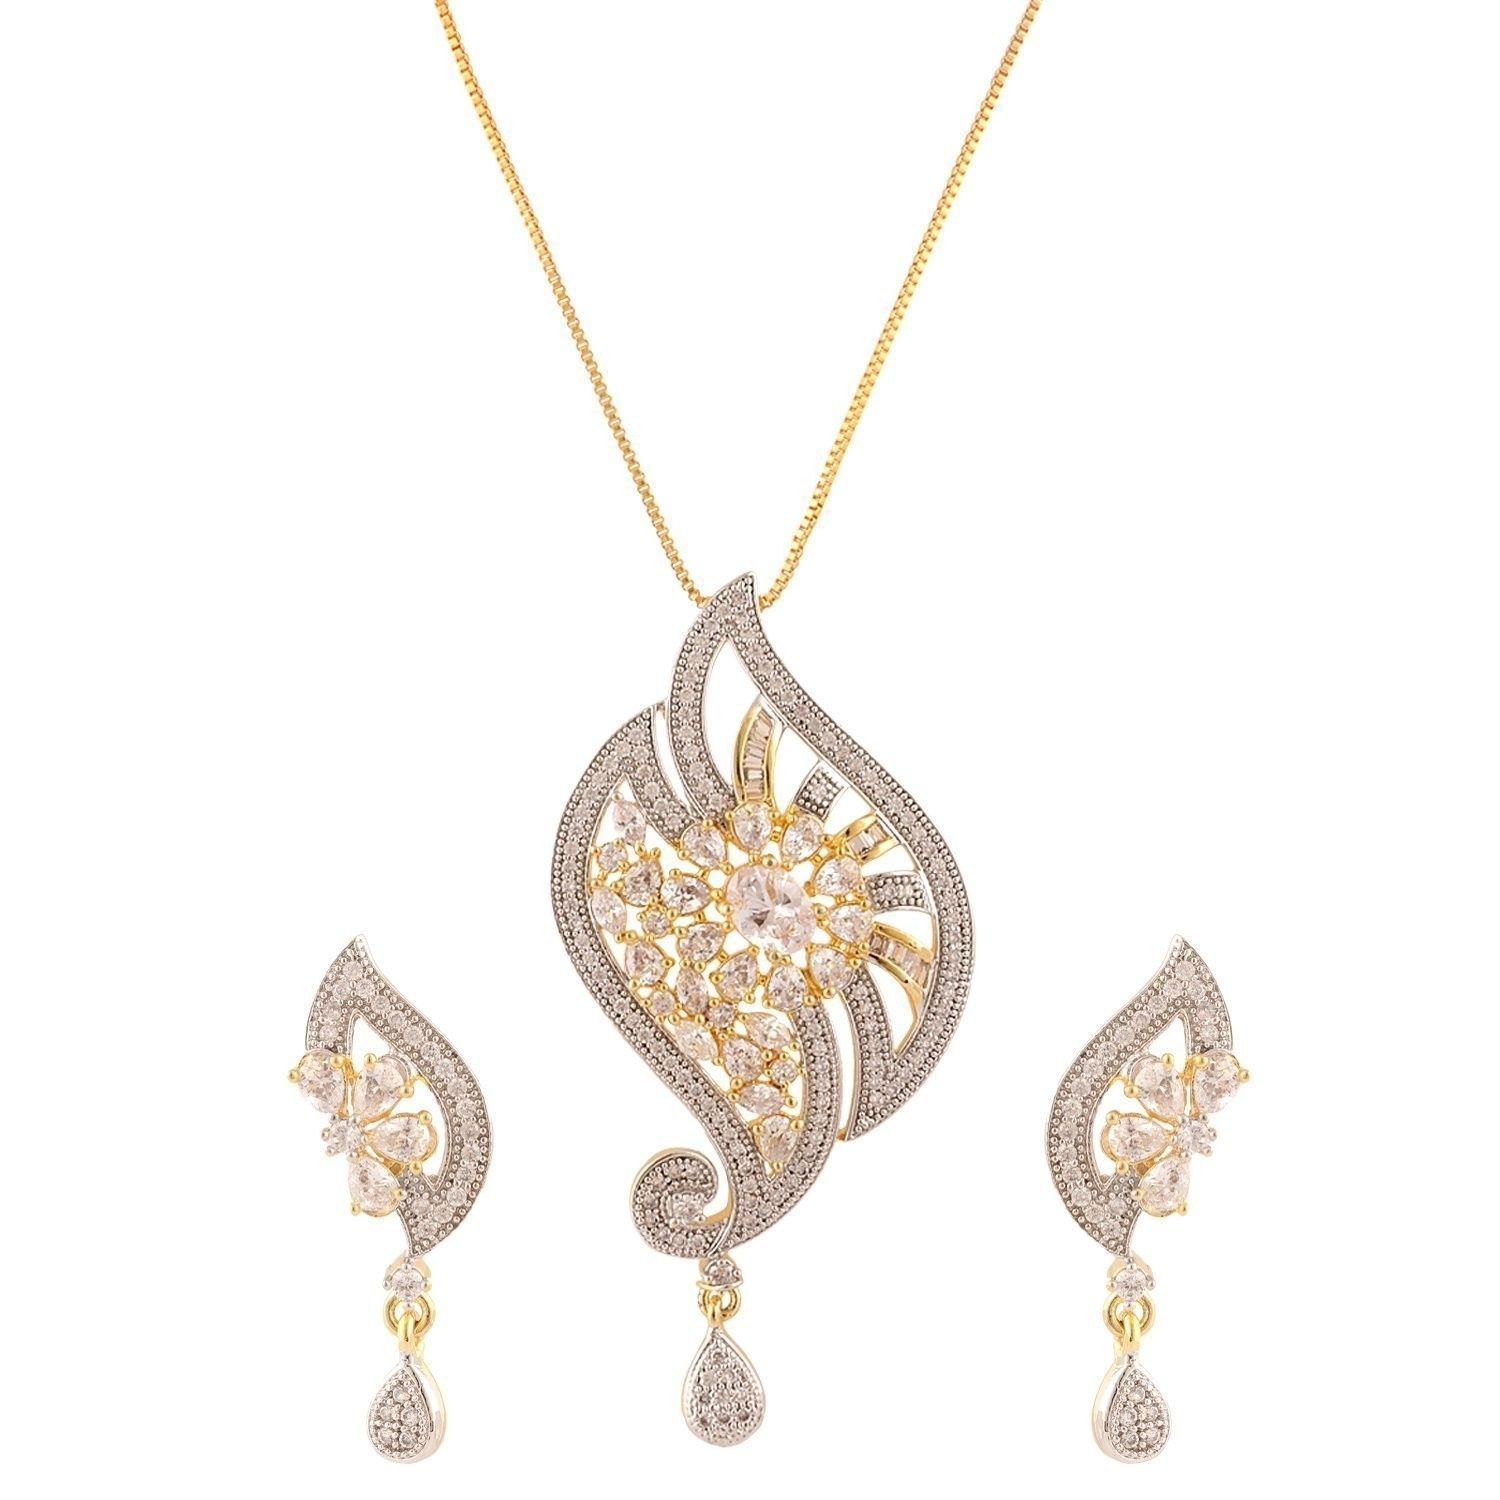 Womenus american diamond peacock cz zircon fashion jewellery set